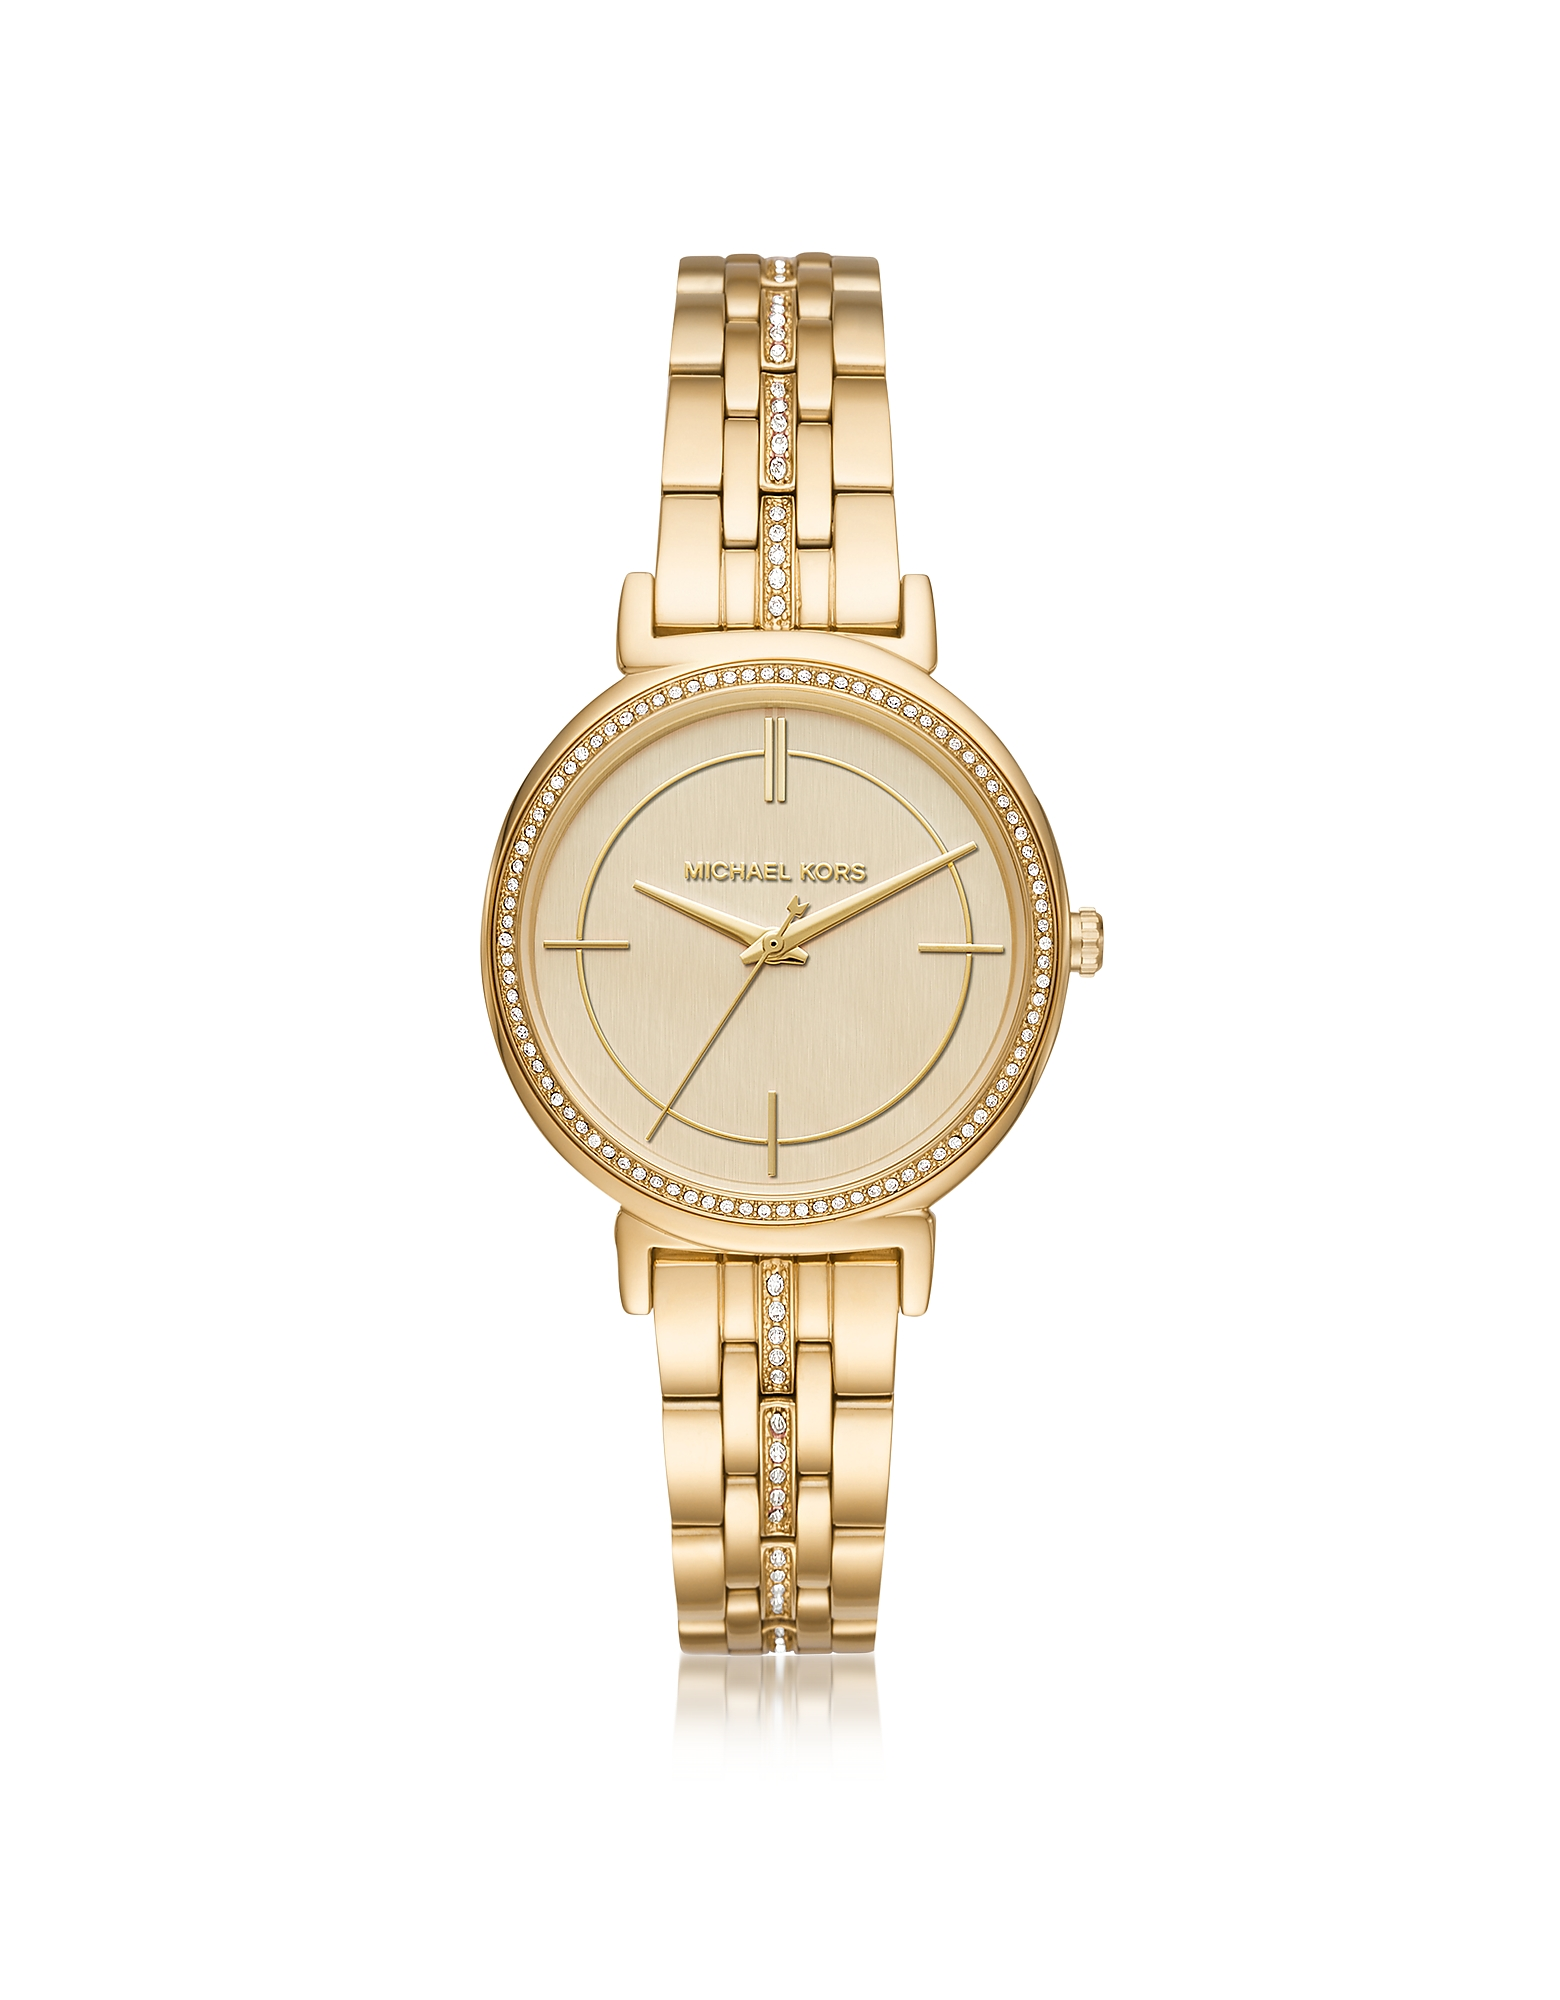 Michael Kors Women's Watches, Cinthia Golden Stainless Steel Women's Watch